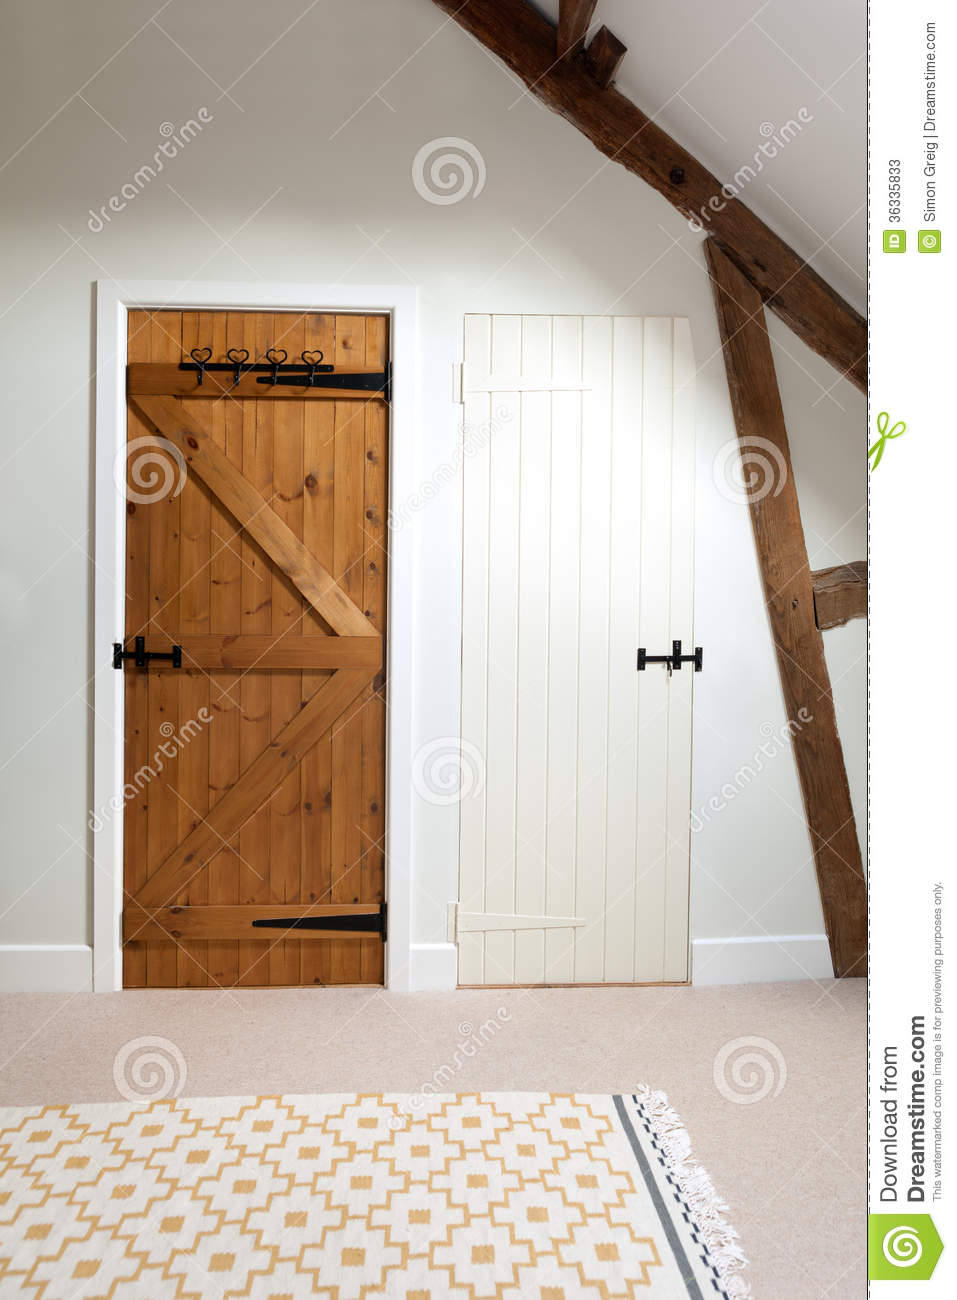 Two wooden doors in a loft stock photos image 36335833 for Wood doors painted white